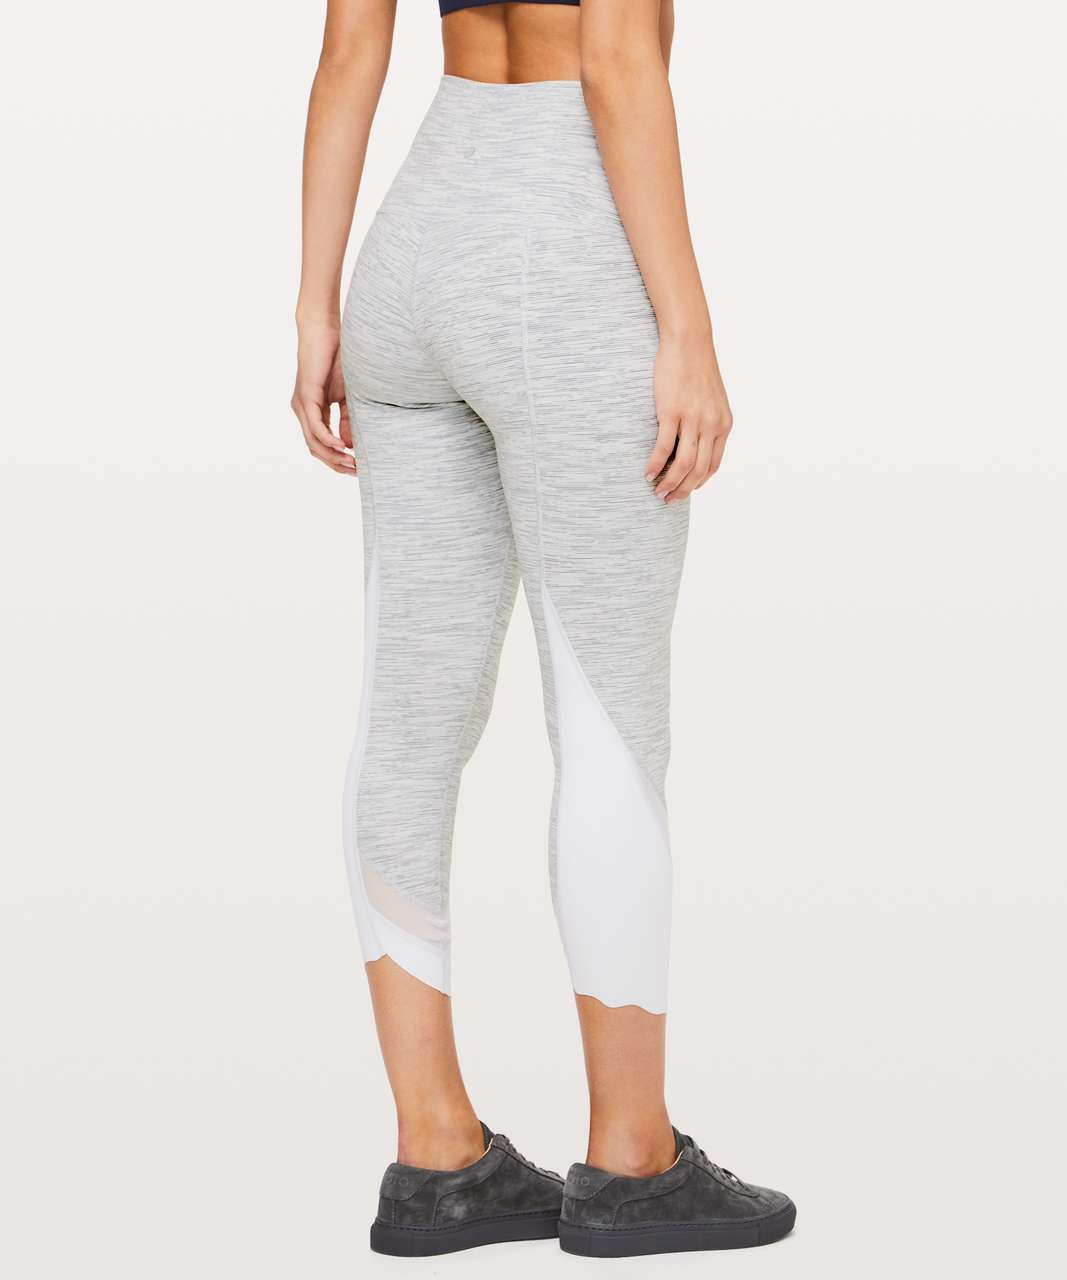 "Lululemon Wunder Under Crop II (Special Edition) *Scallop 24"" - Wee Are From Space Nimbus Battleship"